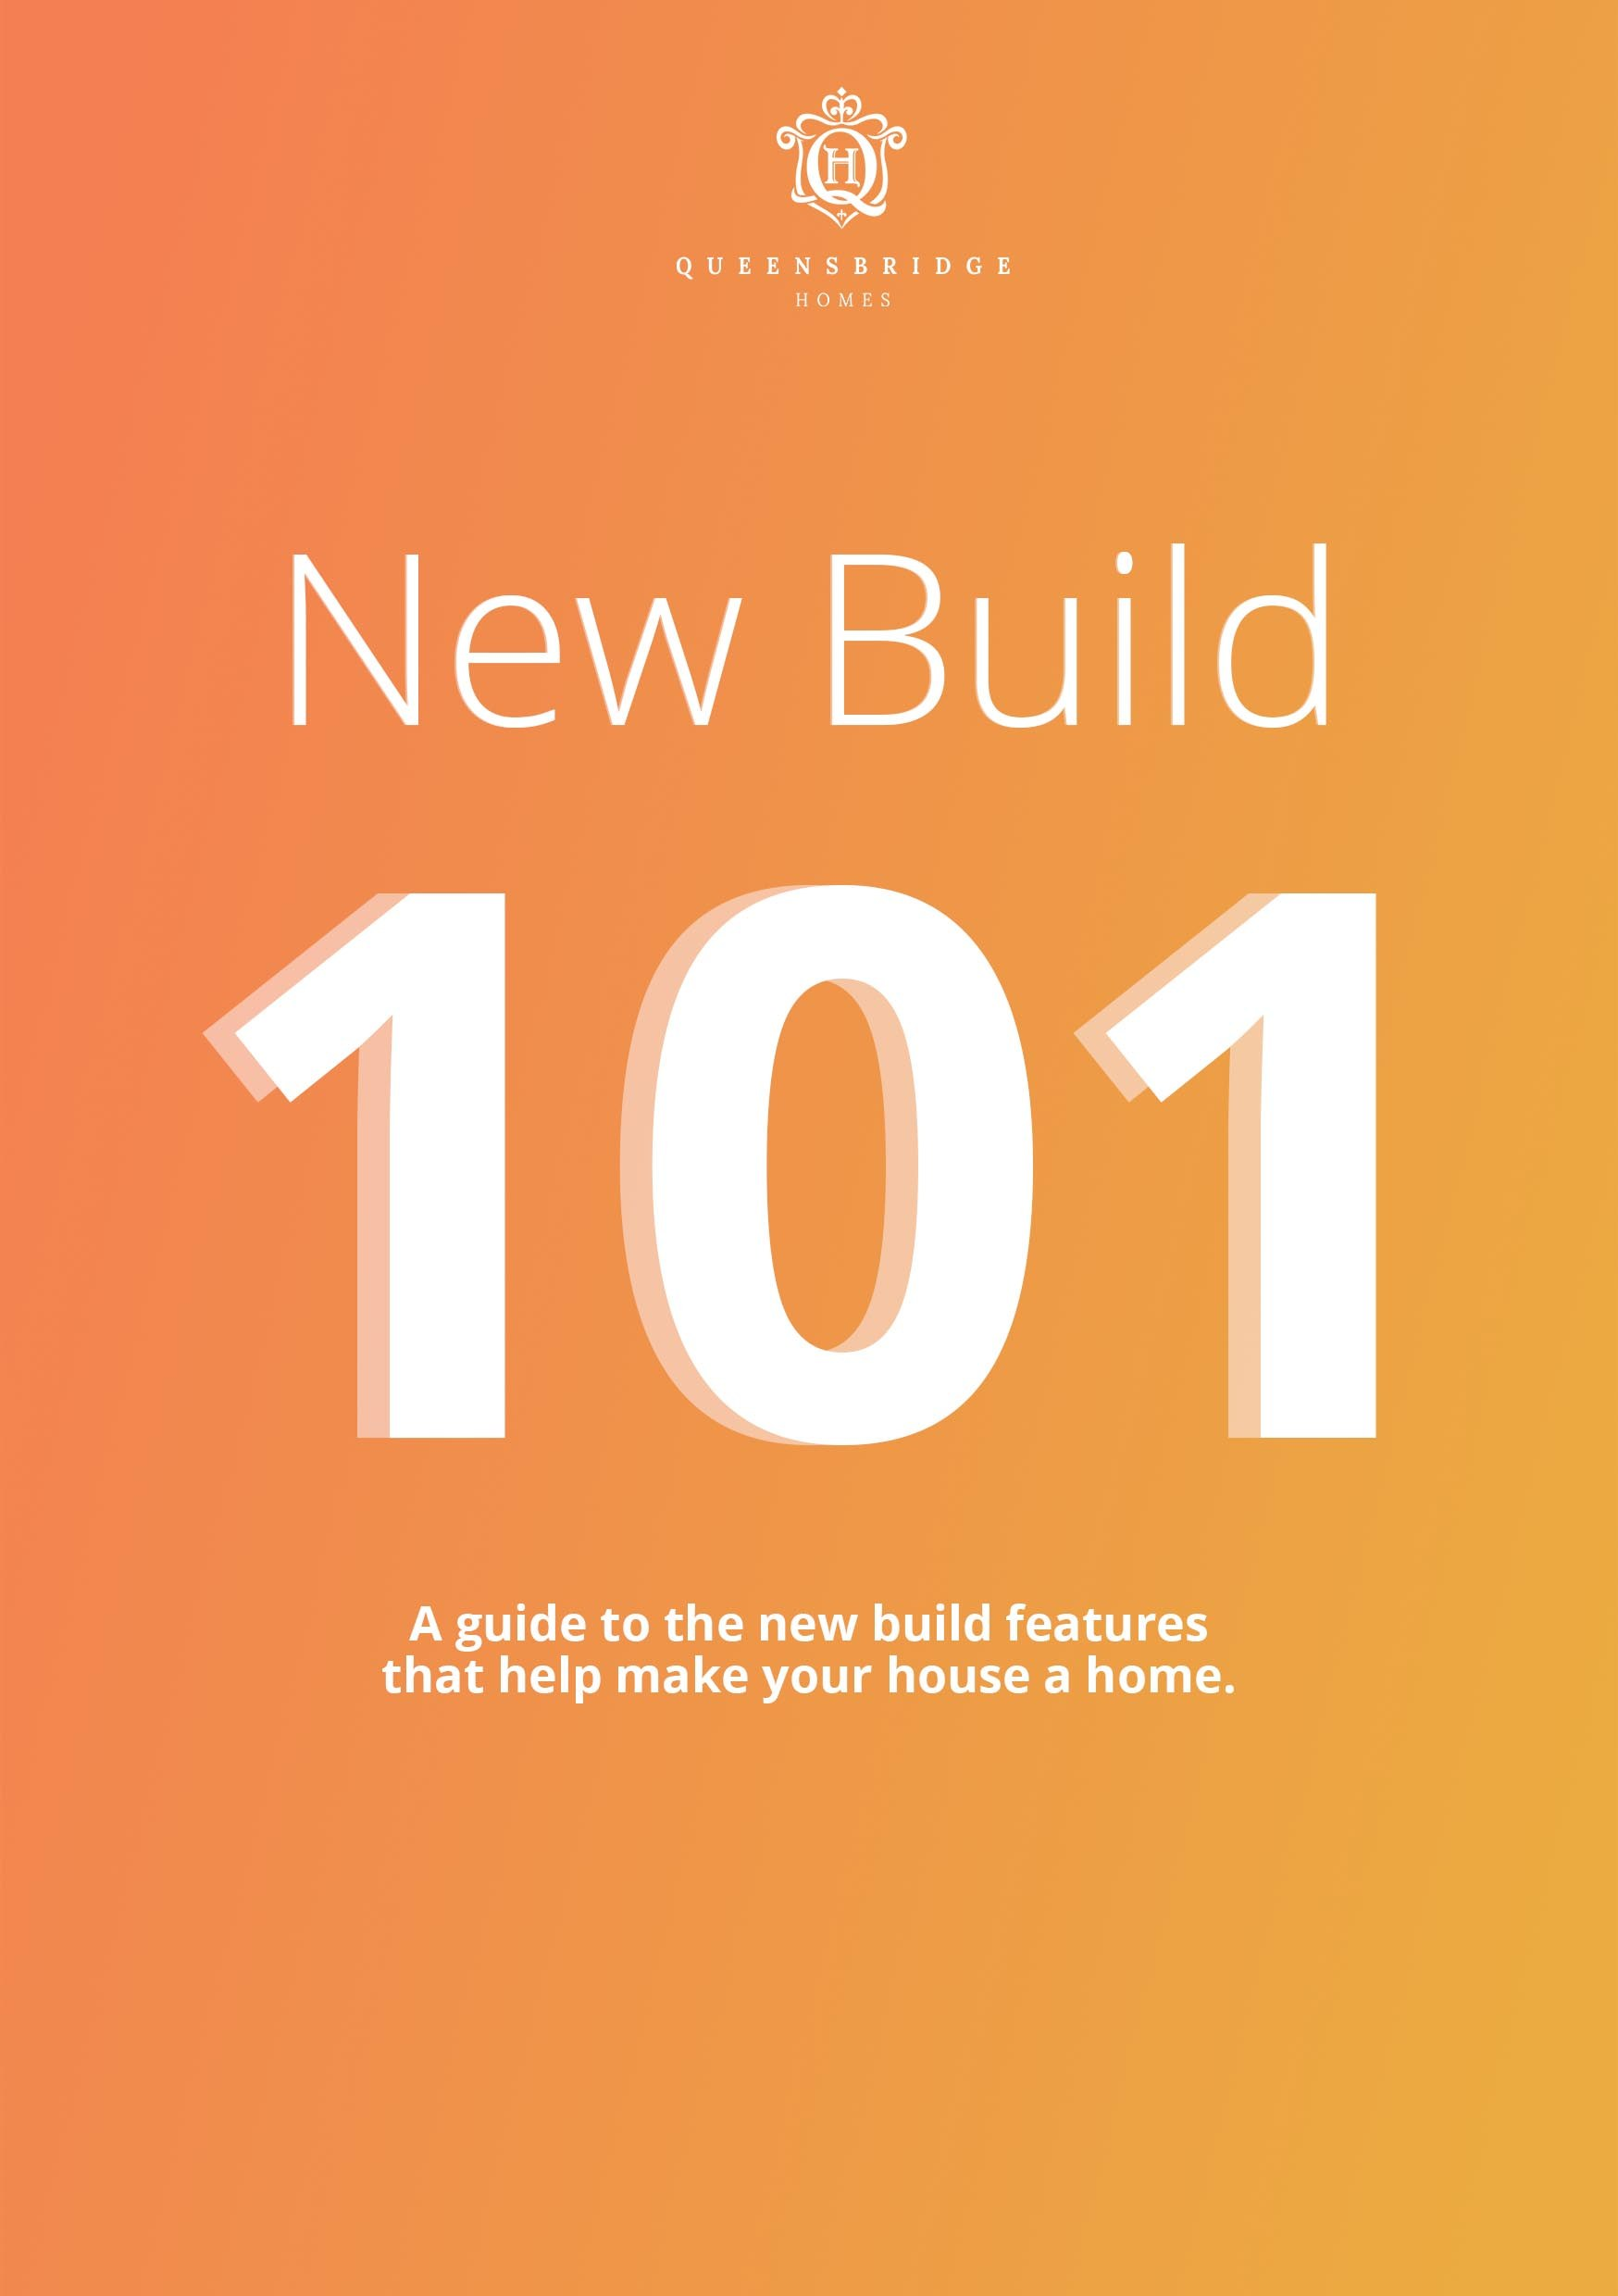 New Build 101, Download for free today!